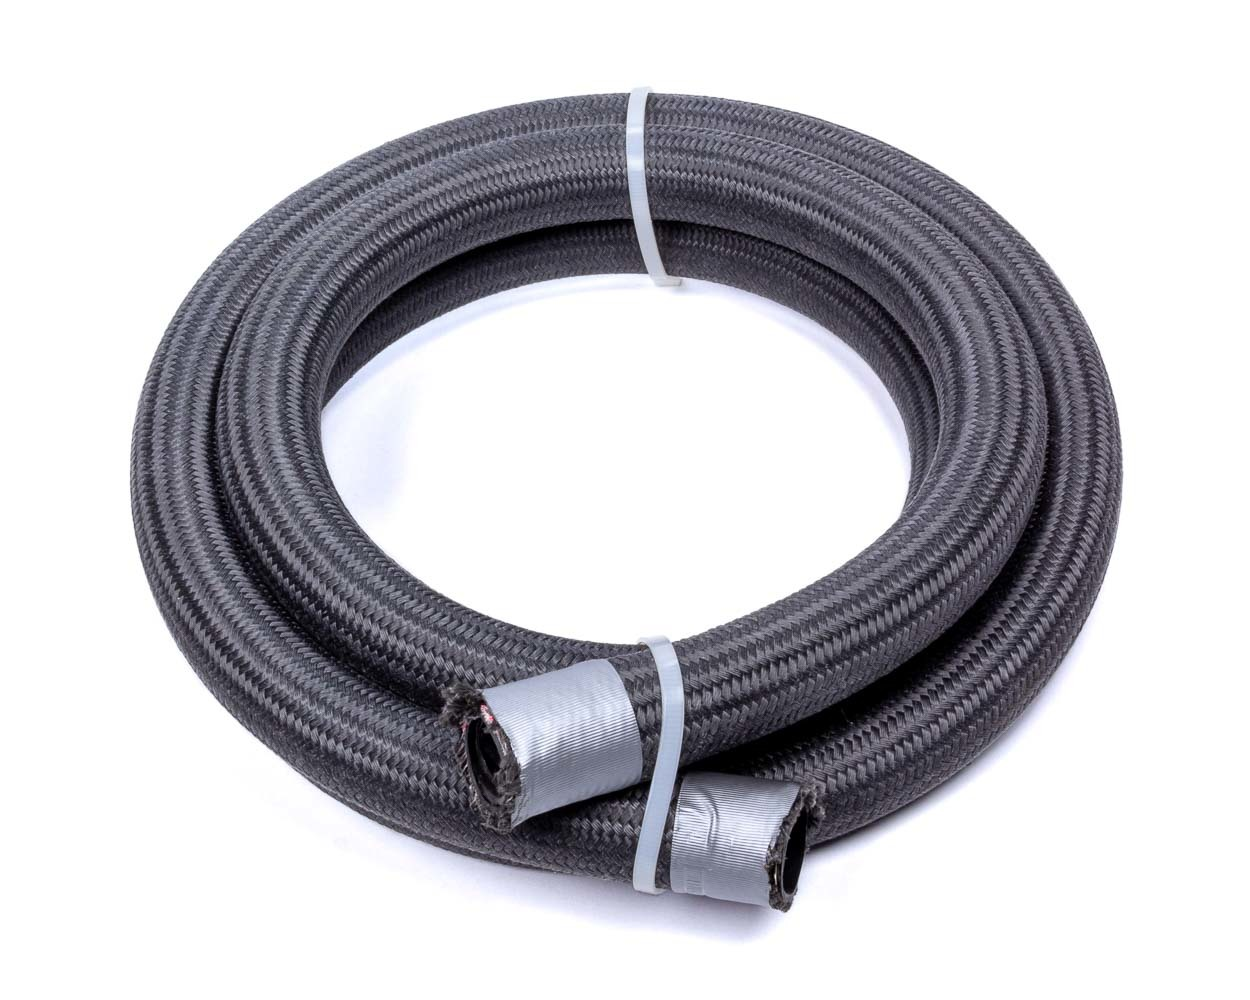 Fragola 2700612 Hose, 12 AN, 6 ft, Braided Fire Retardant Fabric, PTFE, Black, Each